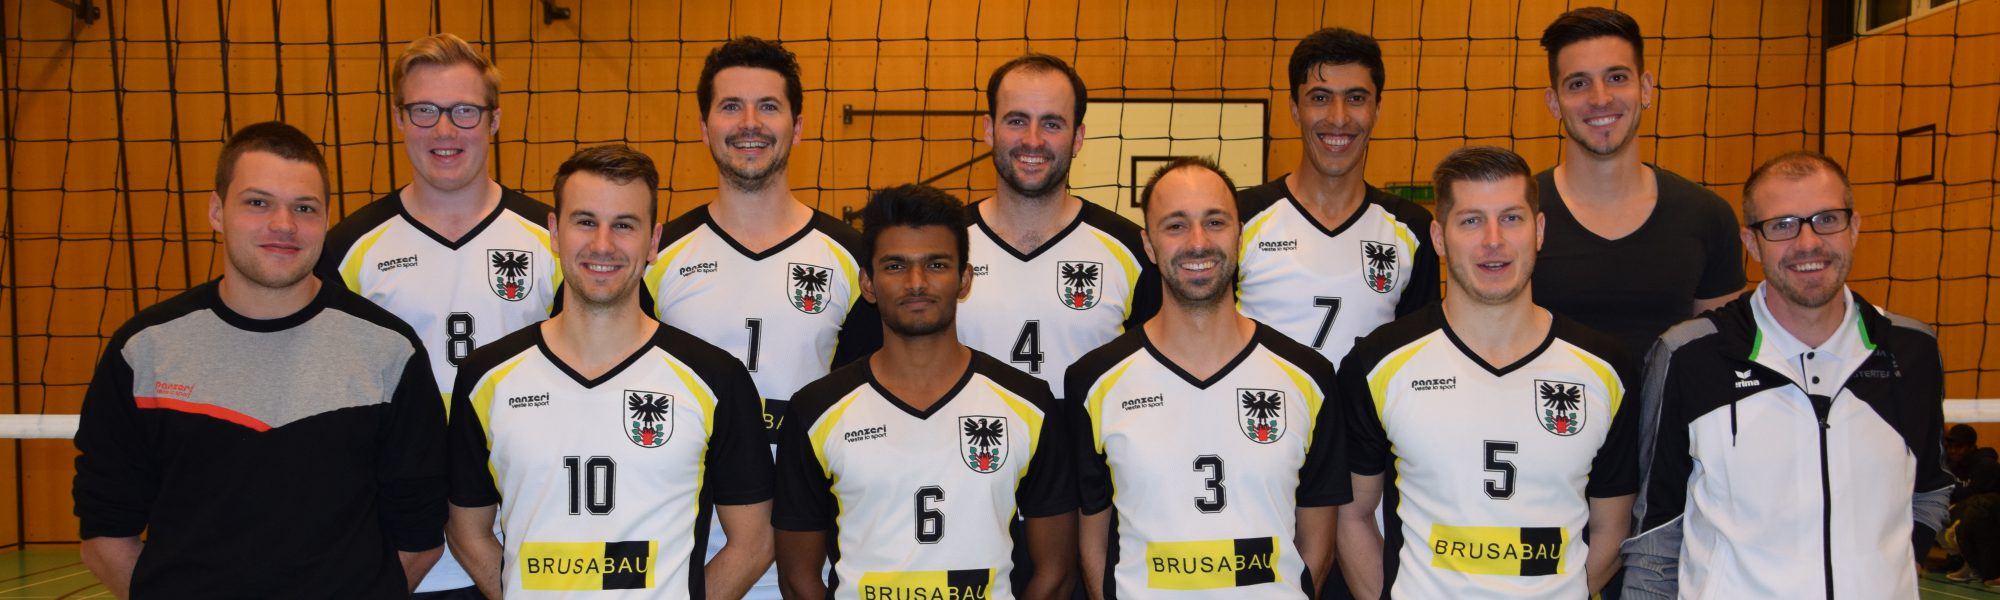 H1-Volley